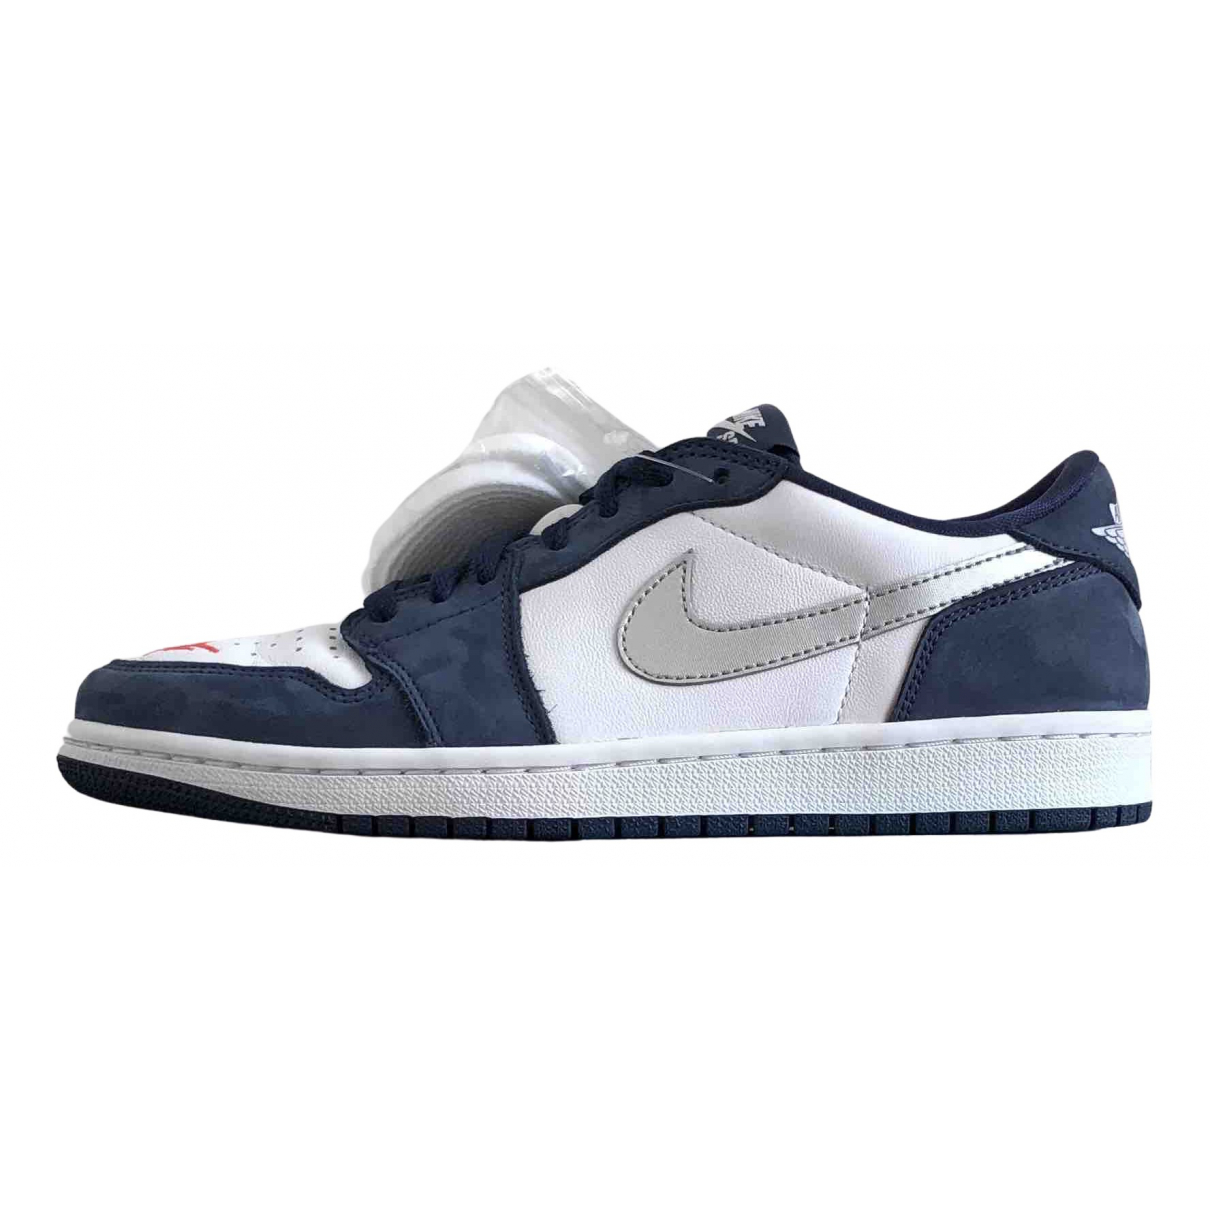 Nike SB Dunk  Navy Leather Trainers for Men 40.5 EU